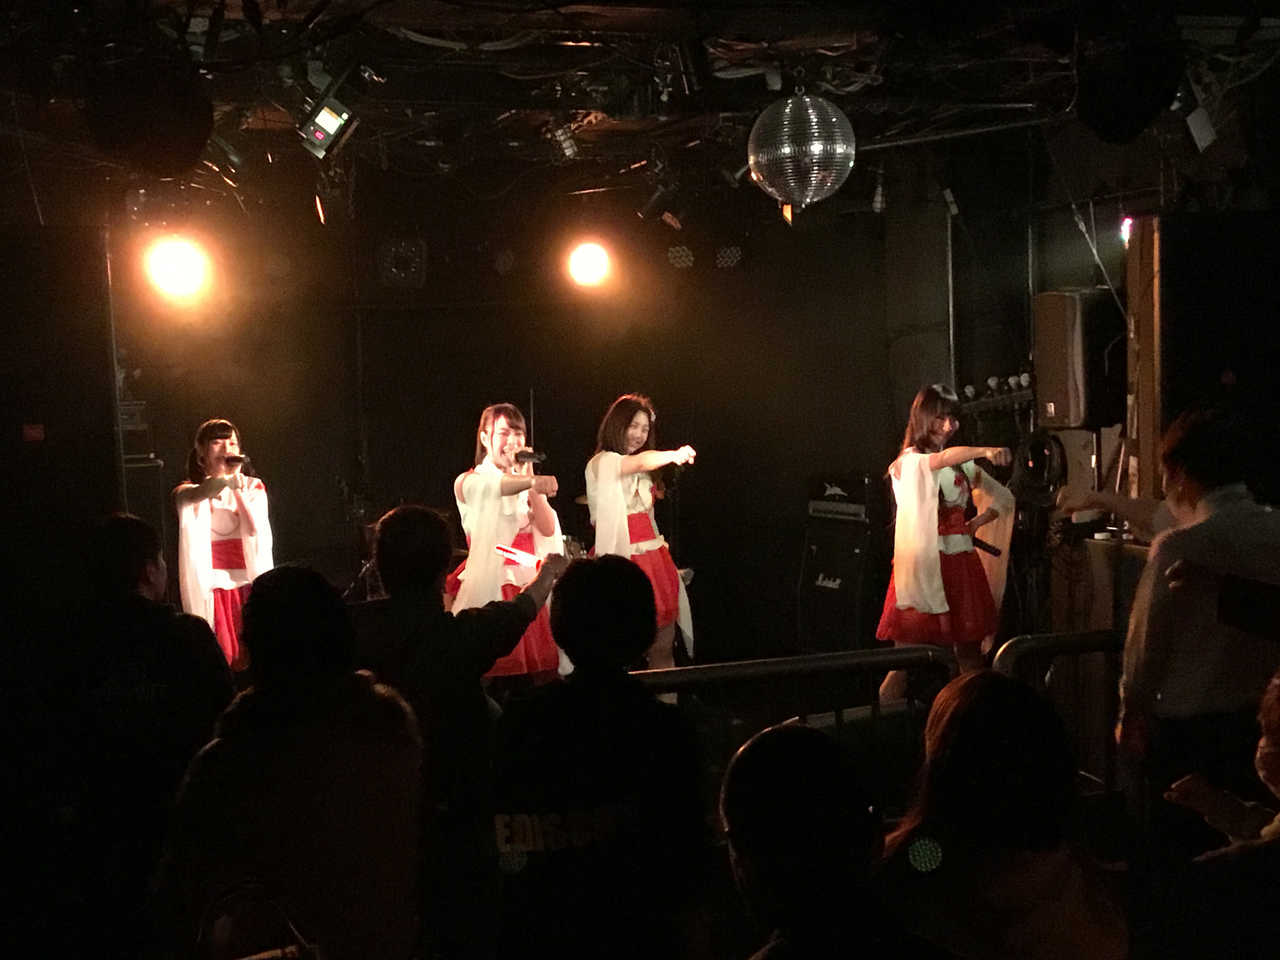 Mr*Daisy&KRD8によるコラボイベント「Kansai Sound Box in CLAPPER powered by UtaTen」が開催!